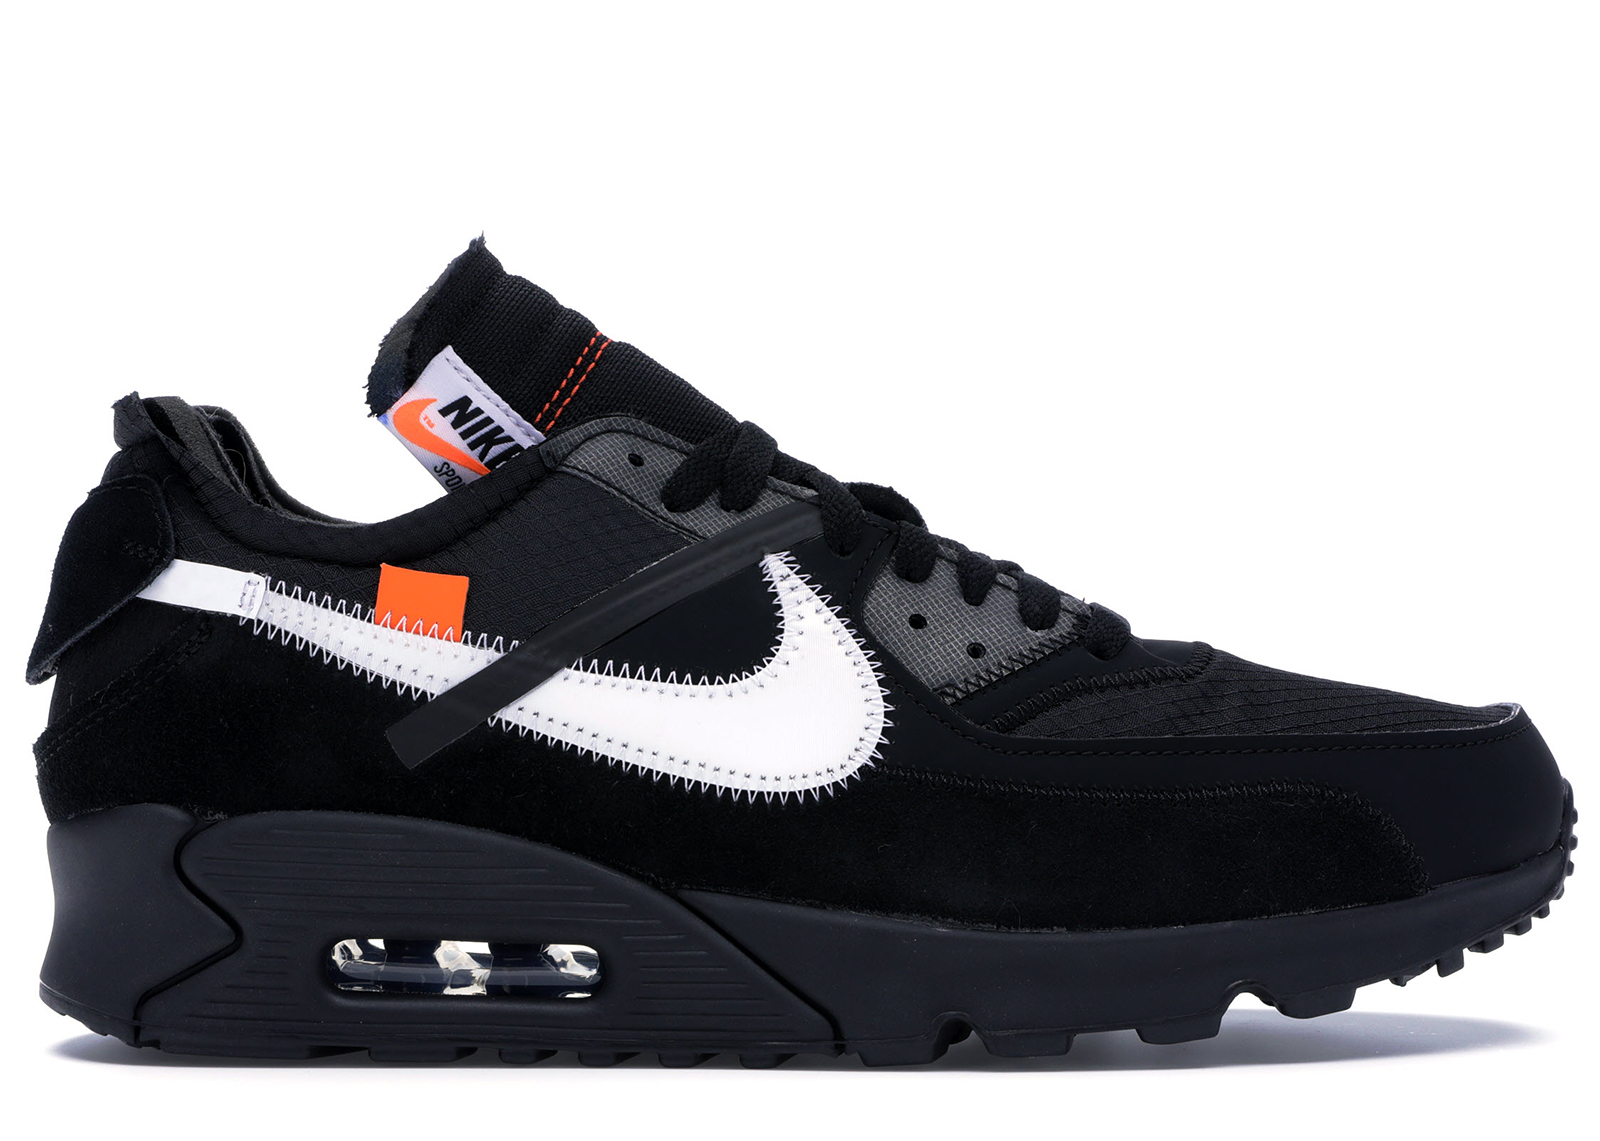 Off White™ x Nike Air Max 90 Available at StockX | HYPEBEAST